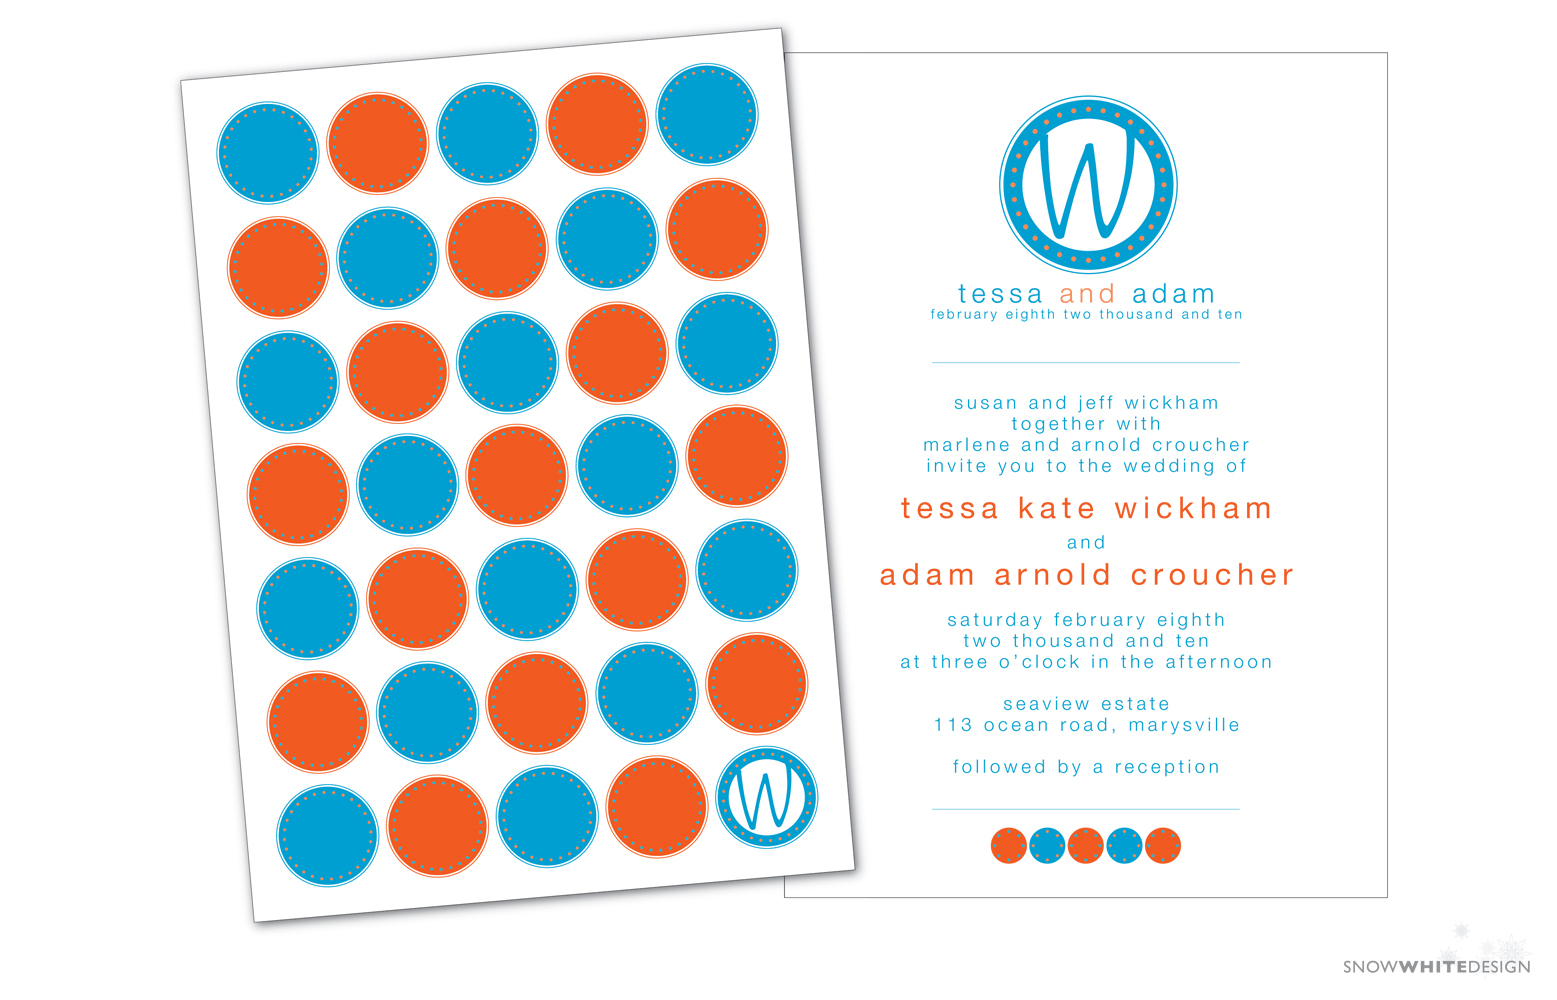 DIY, Stationery, white, orange, blue, invitation, Invitations, Monogram, Pumpkin, Teal, Design, Invite, Snow, Circle, Snow white design